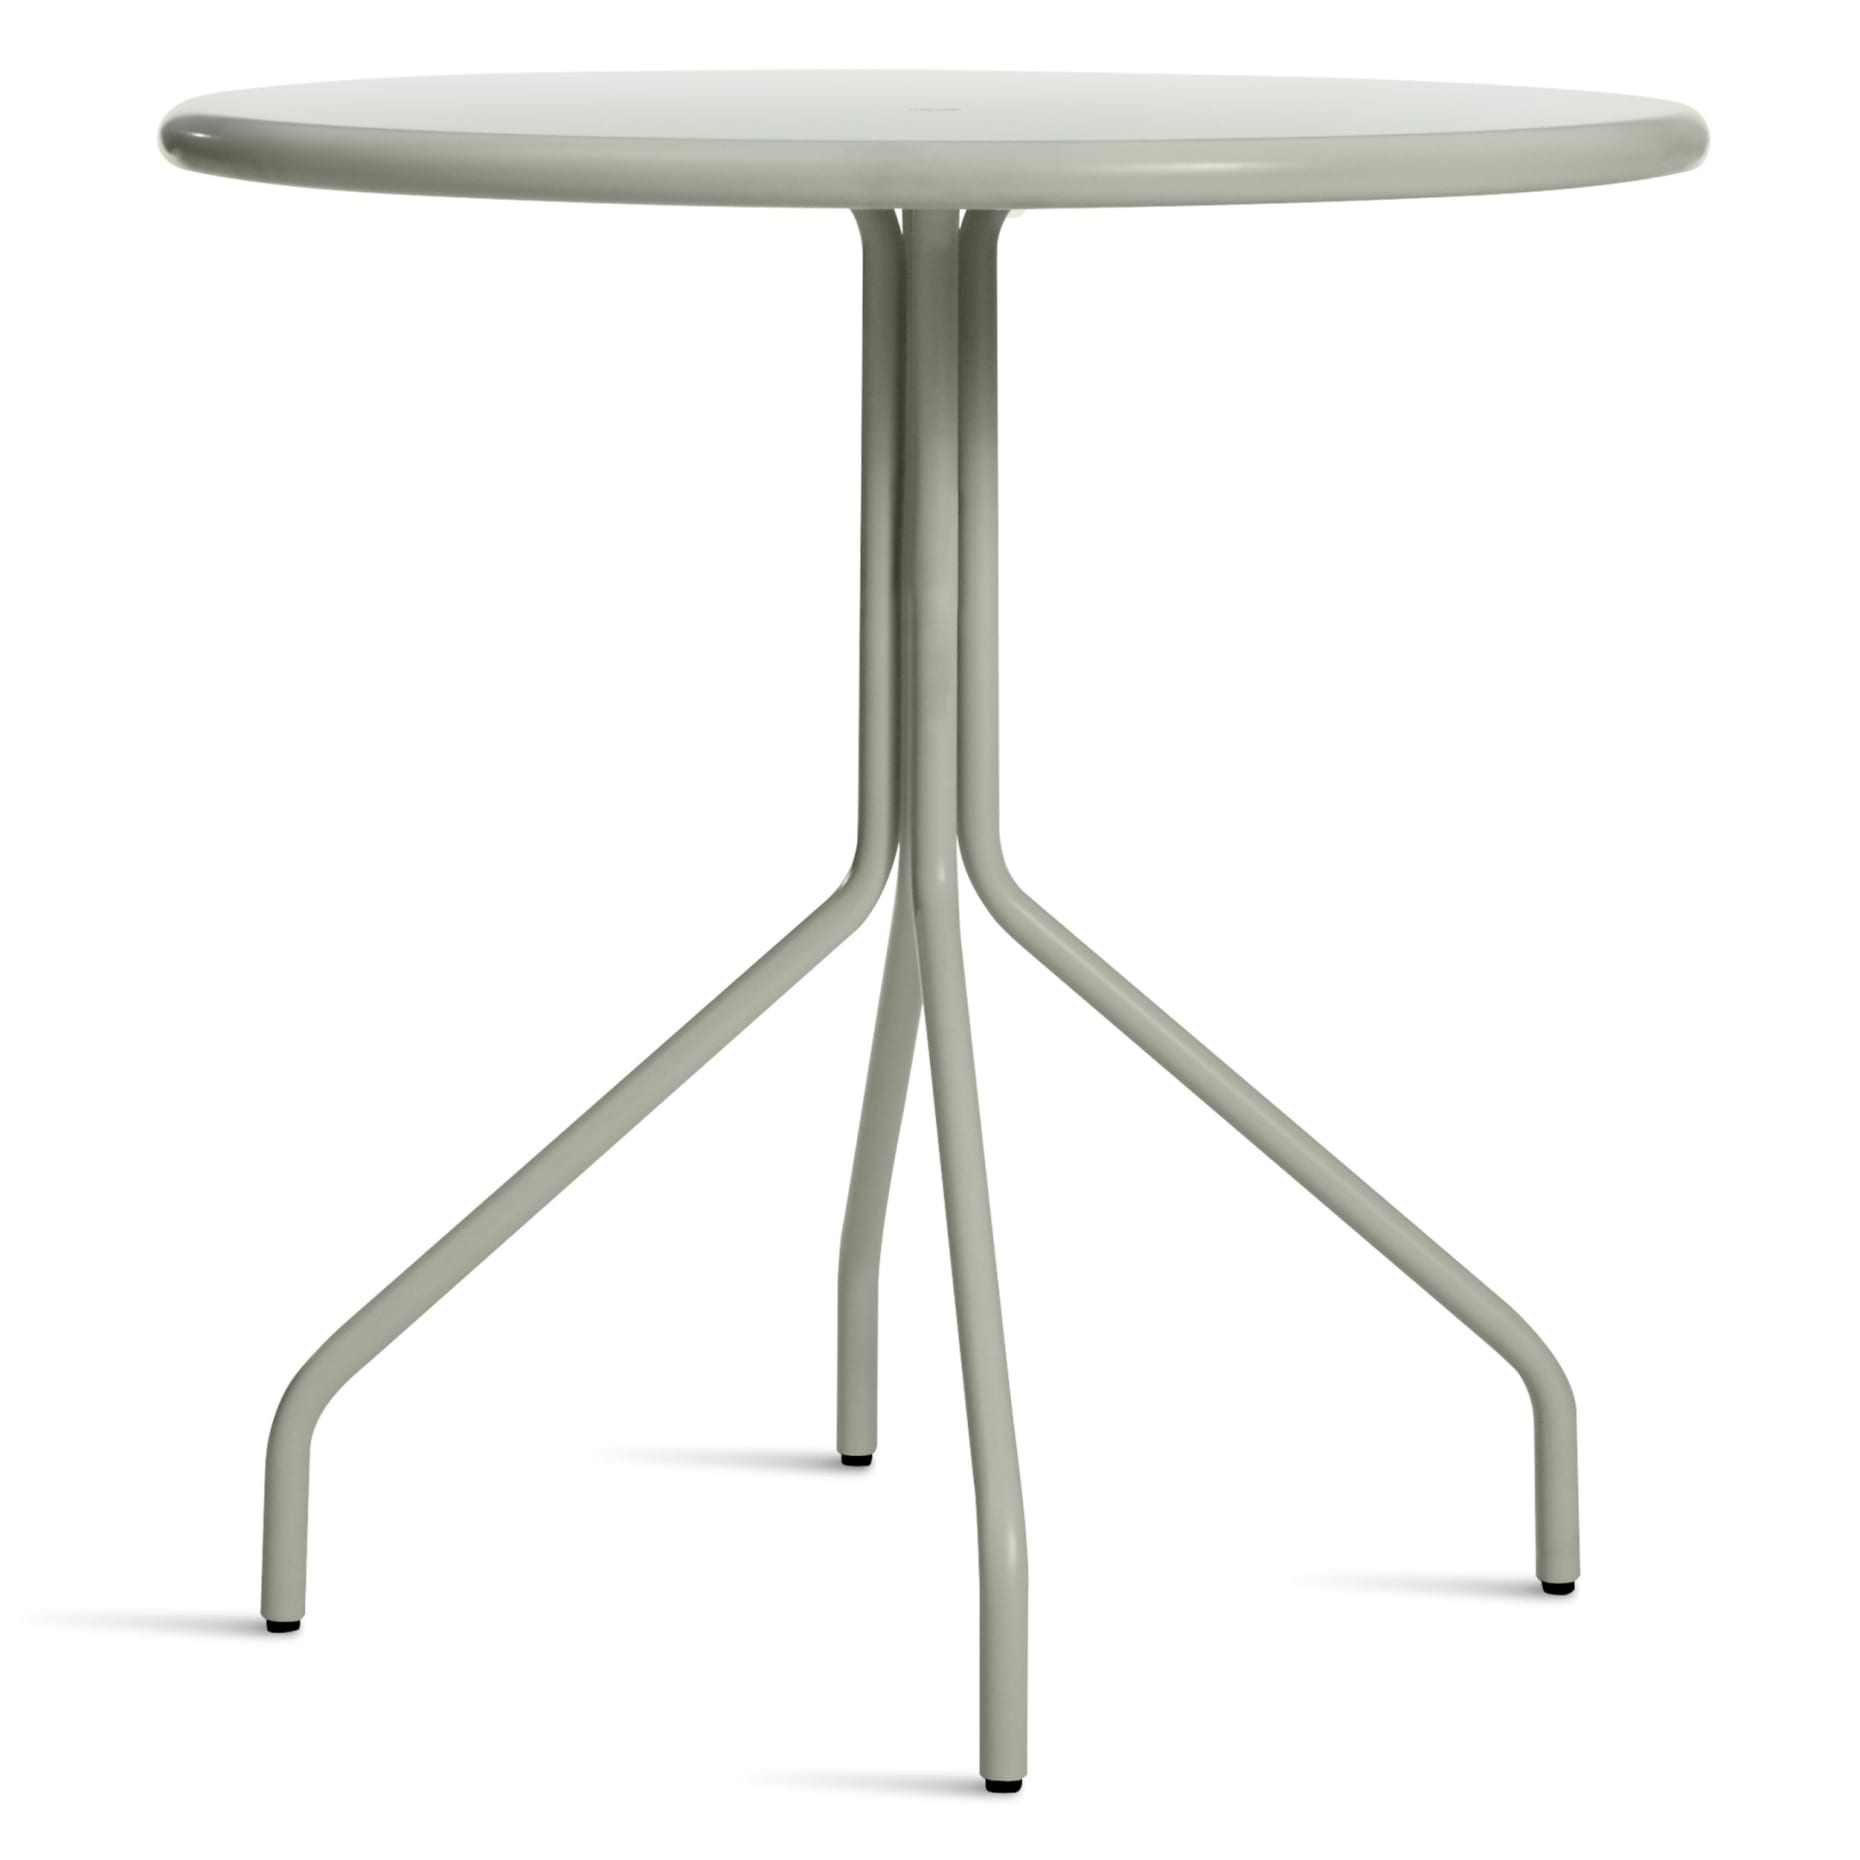 hm1 catb30 gg low hot mesh cafe table grey green